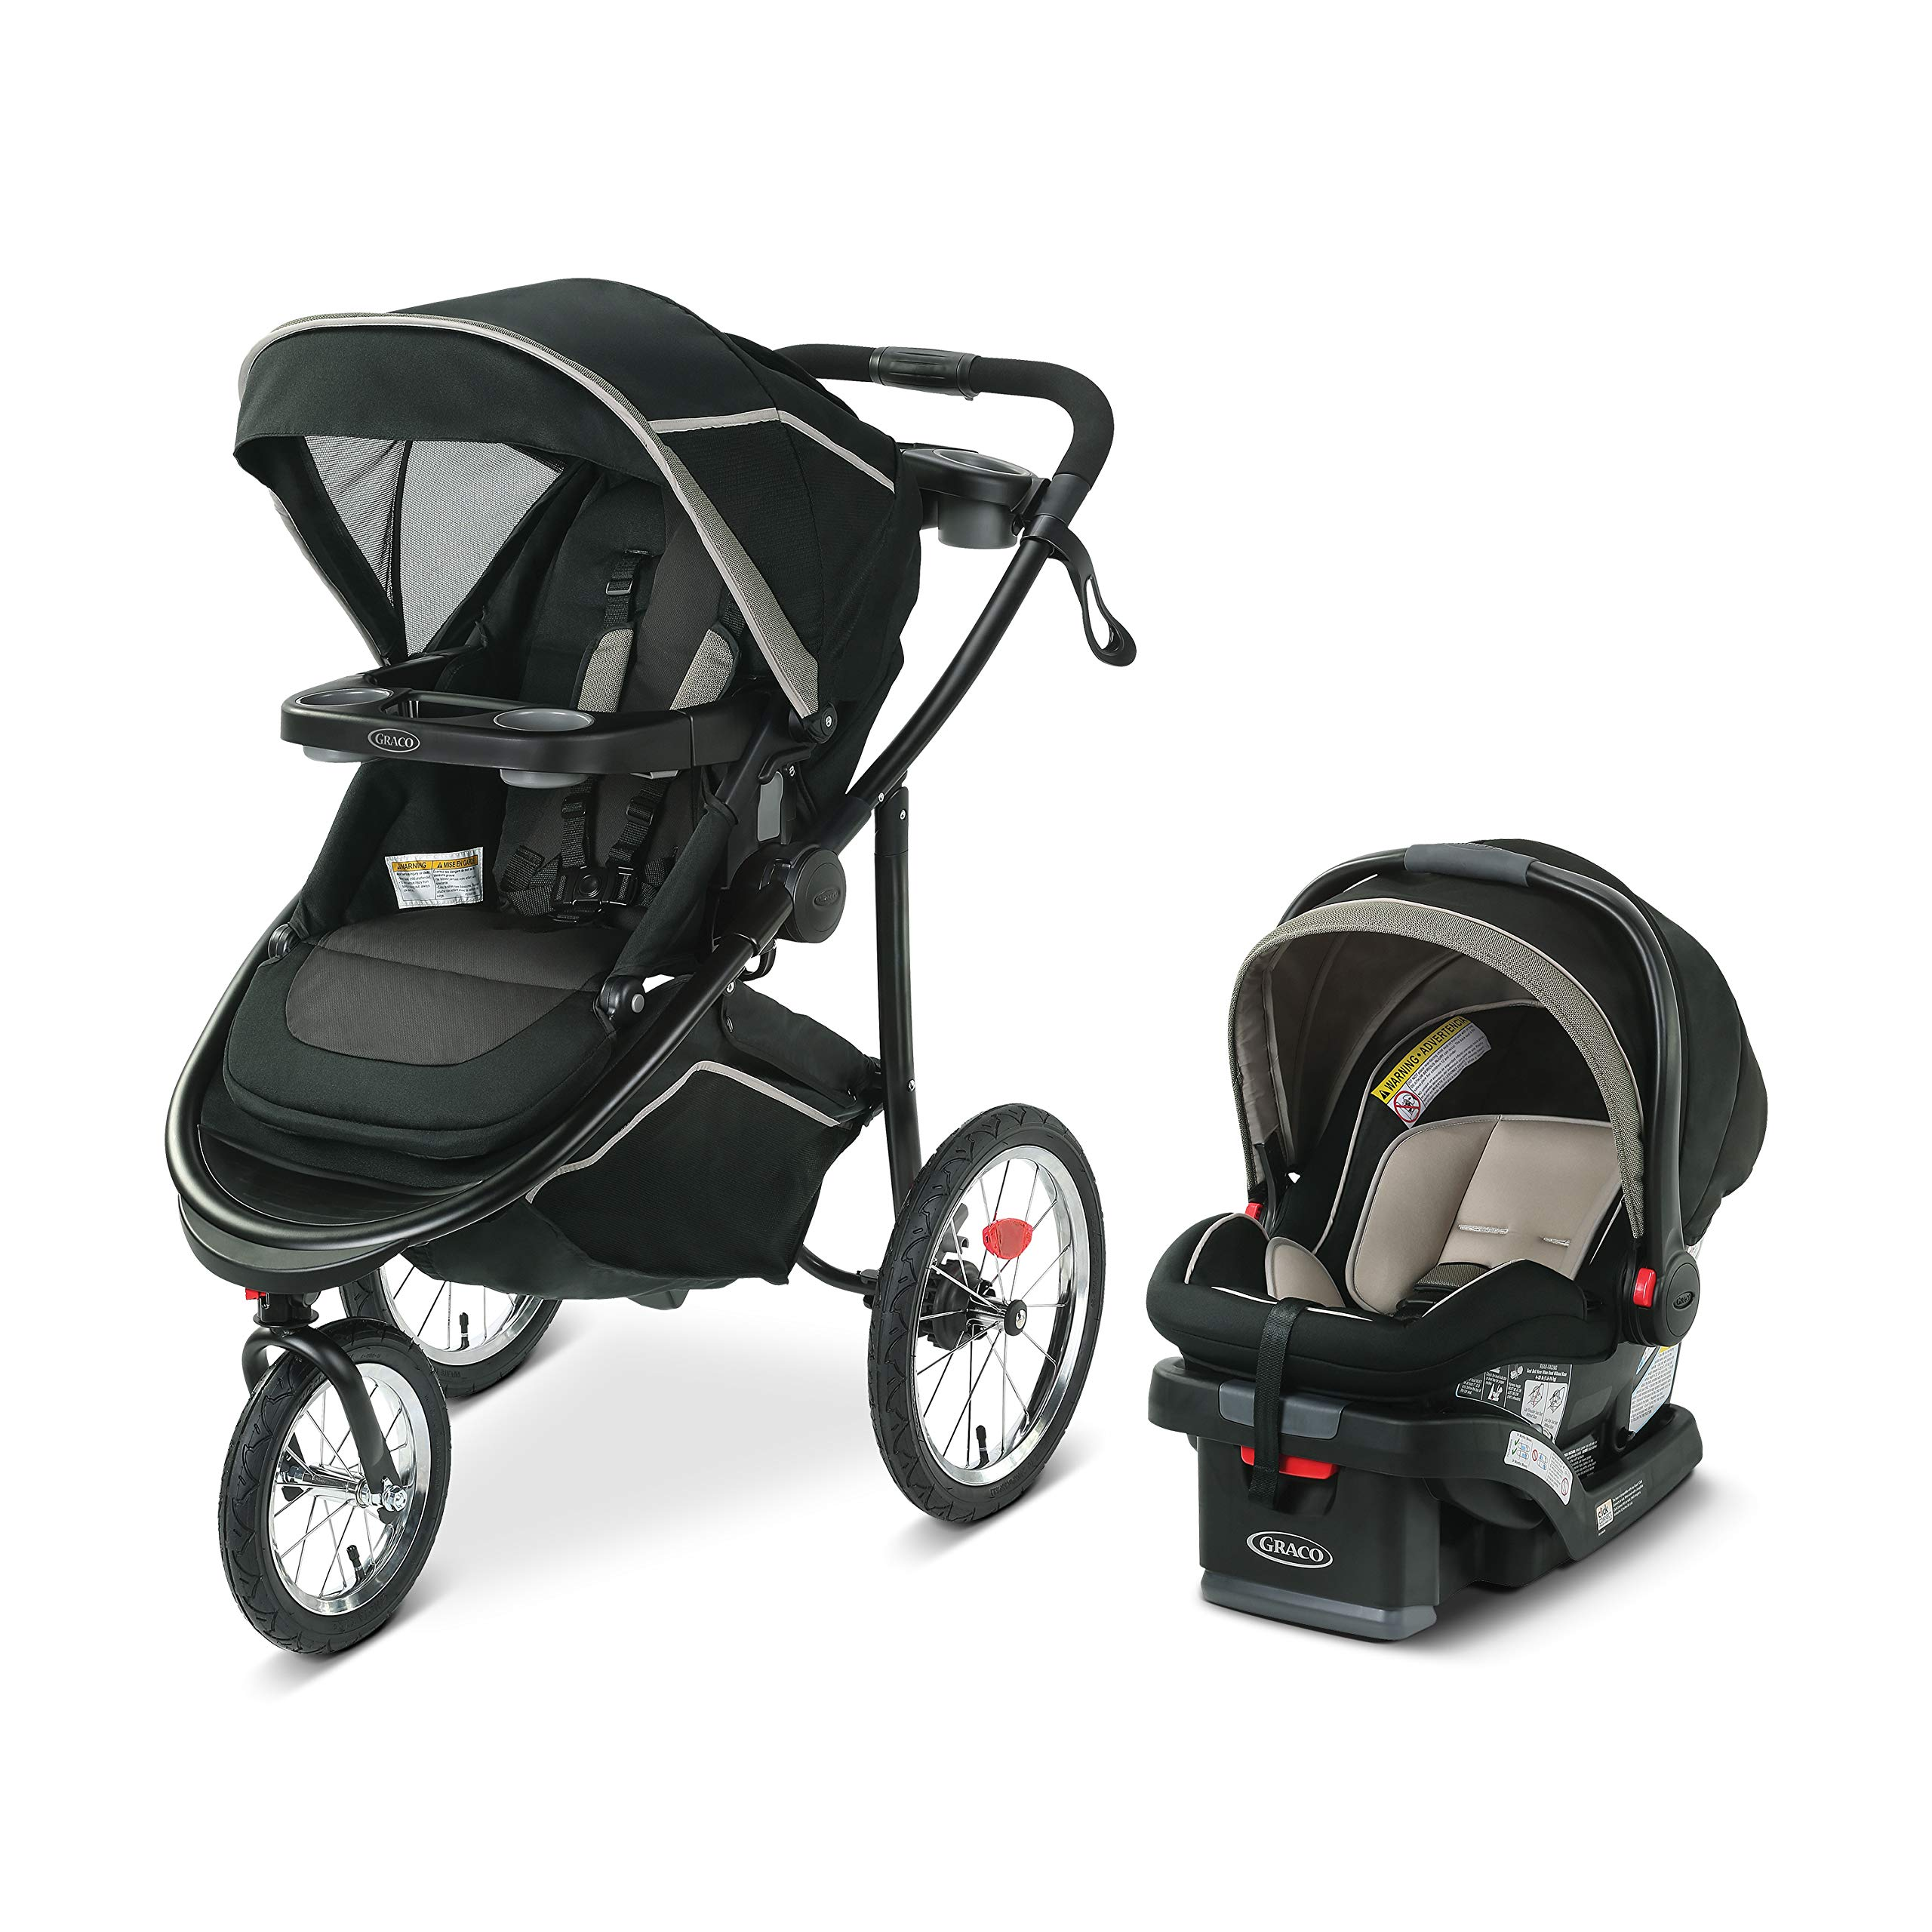 Graco Modes Jogger 2.0 Travel System | Includes Jogging Stroller and SnugRide SnugLock 35 LX Infant Car Seat, Haven by Graco